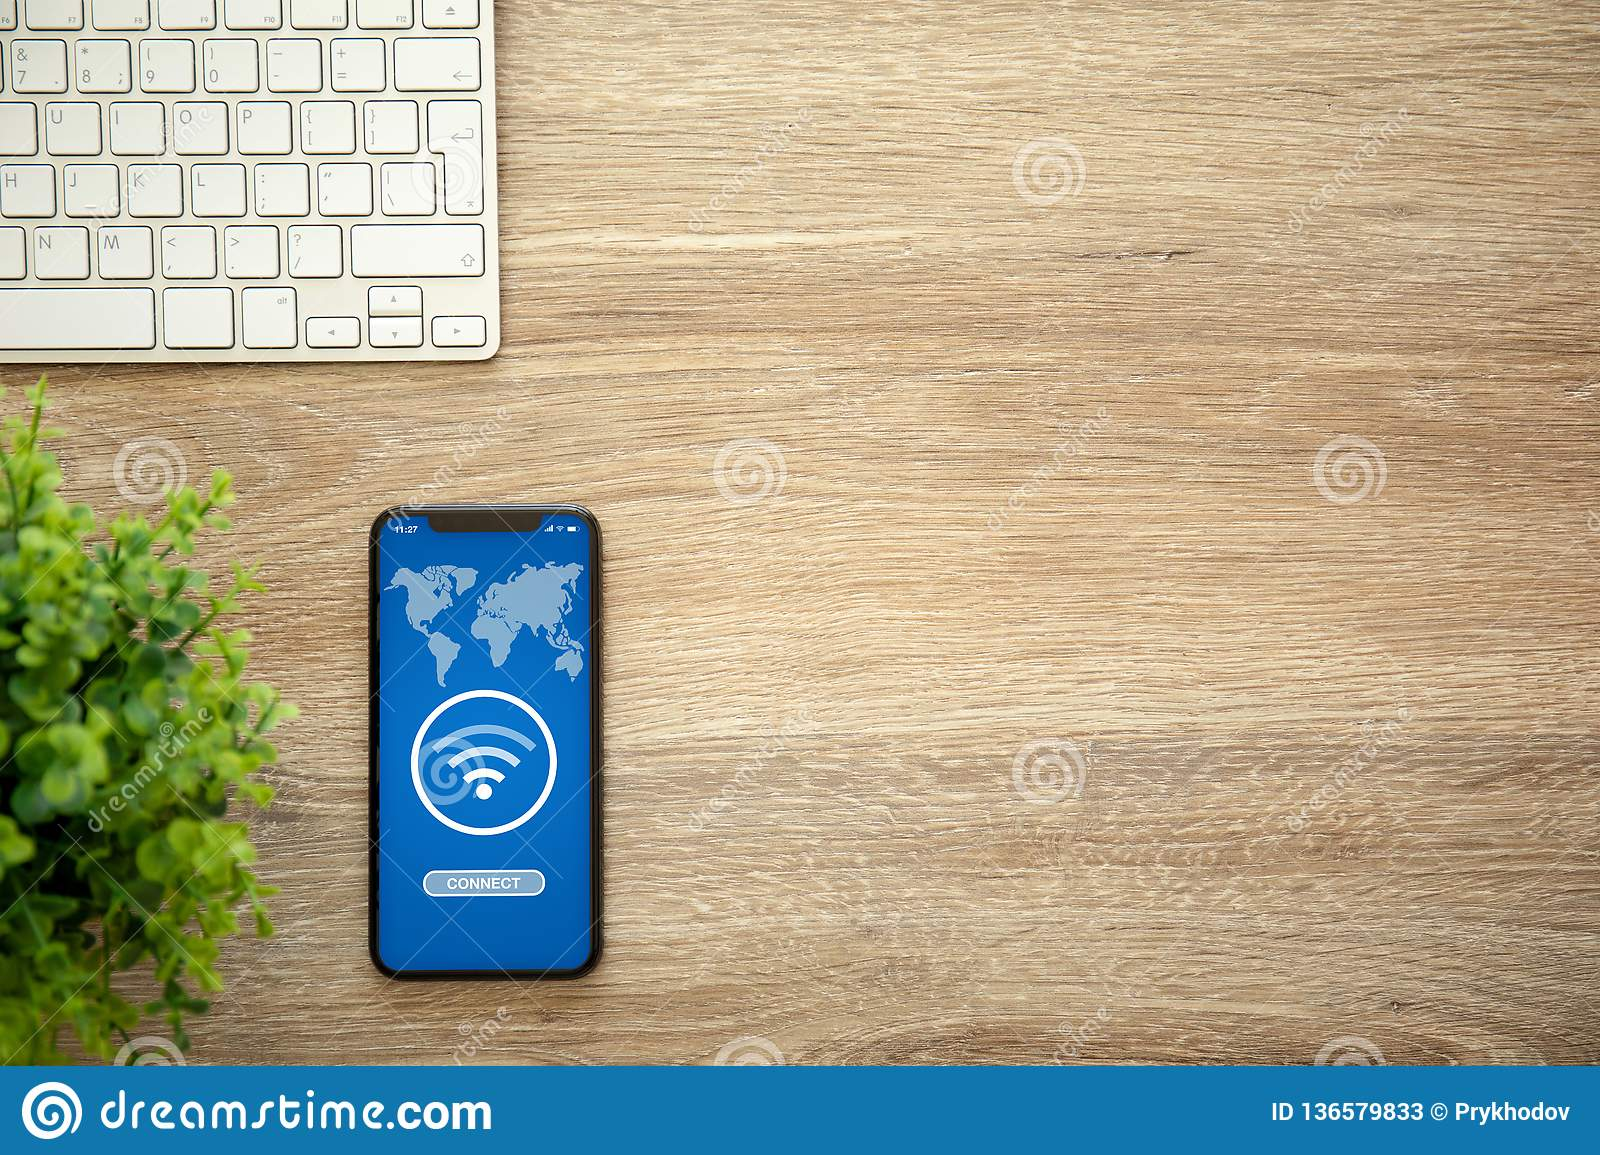 Phone With App Wifi Connect On Screen Wooden Table Keyboard Stock